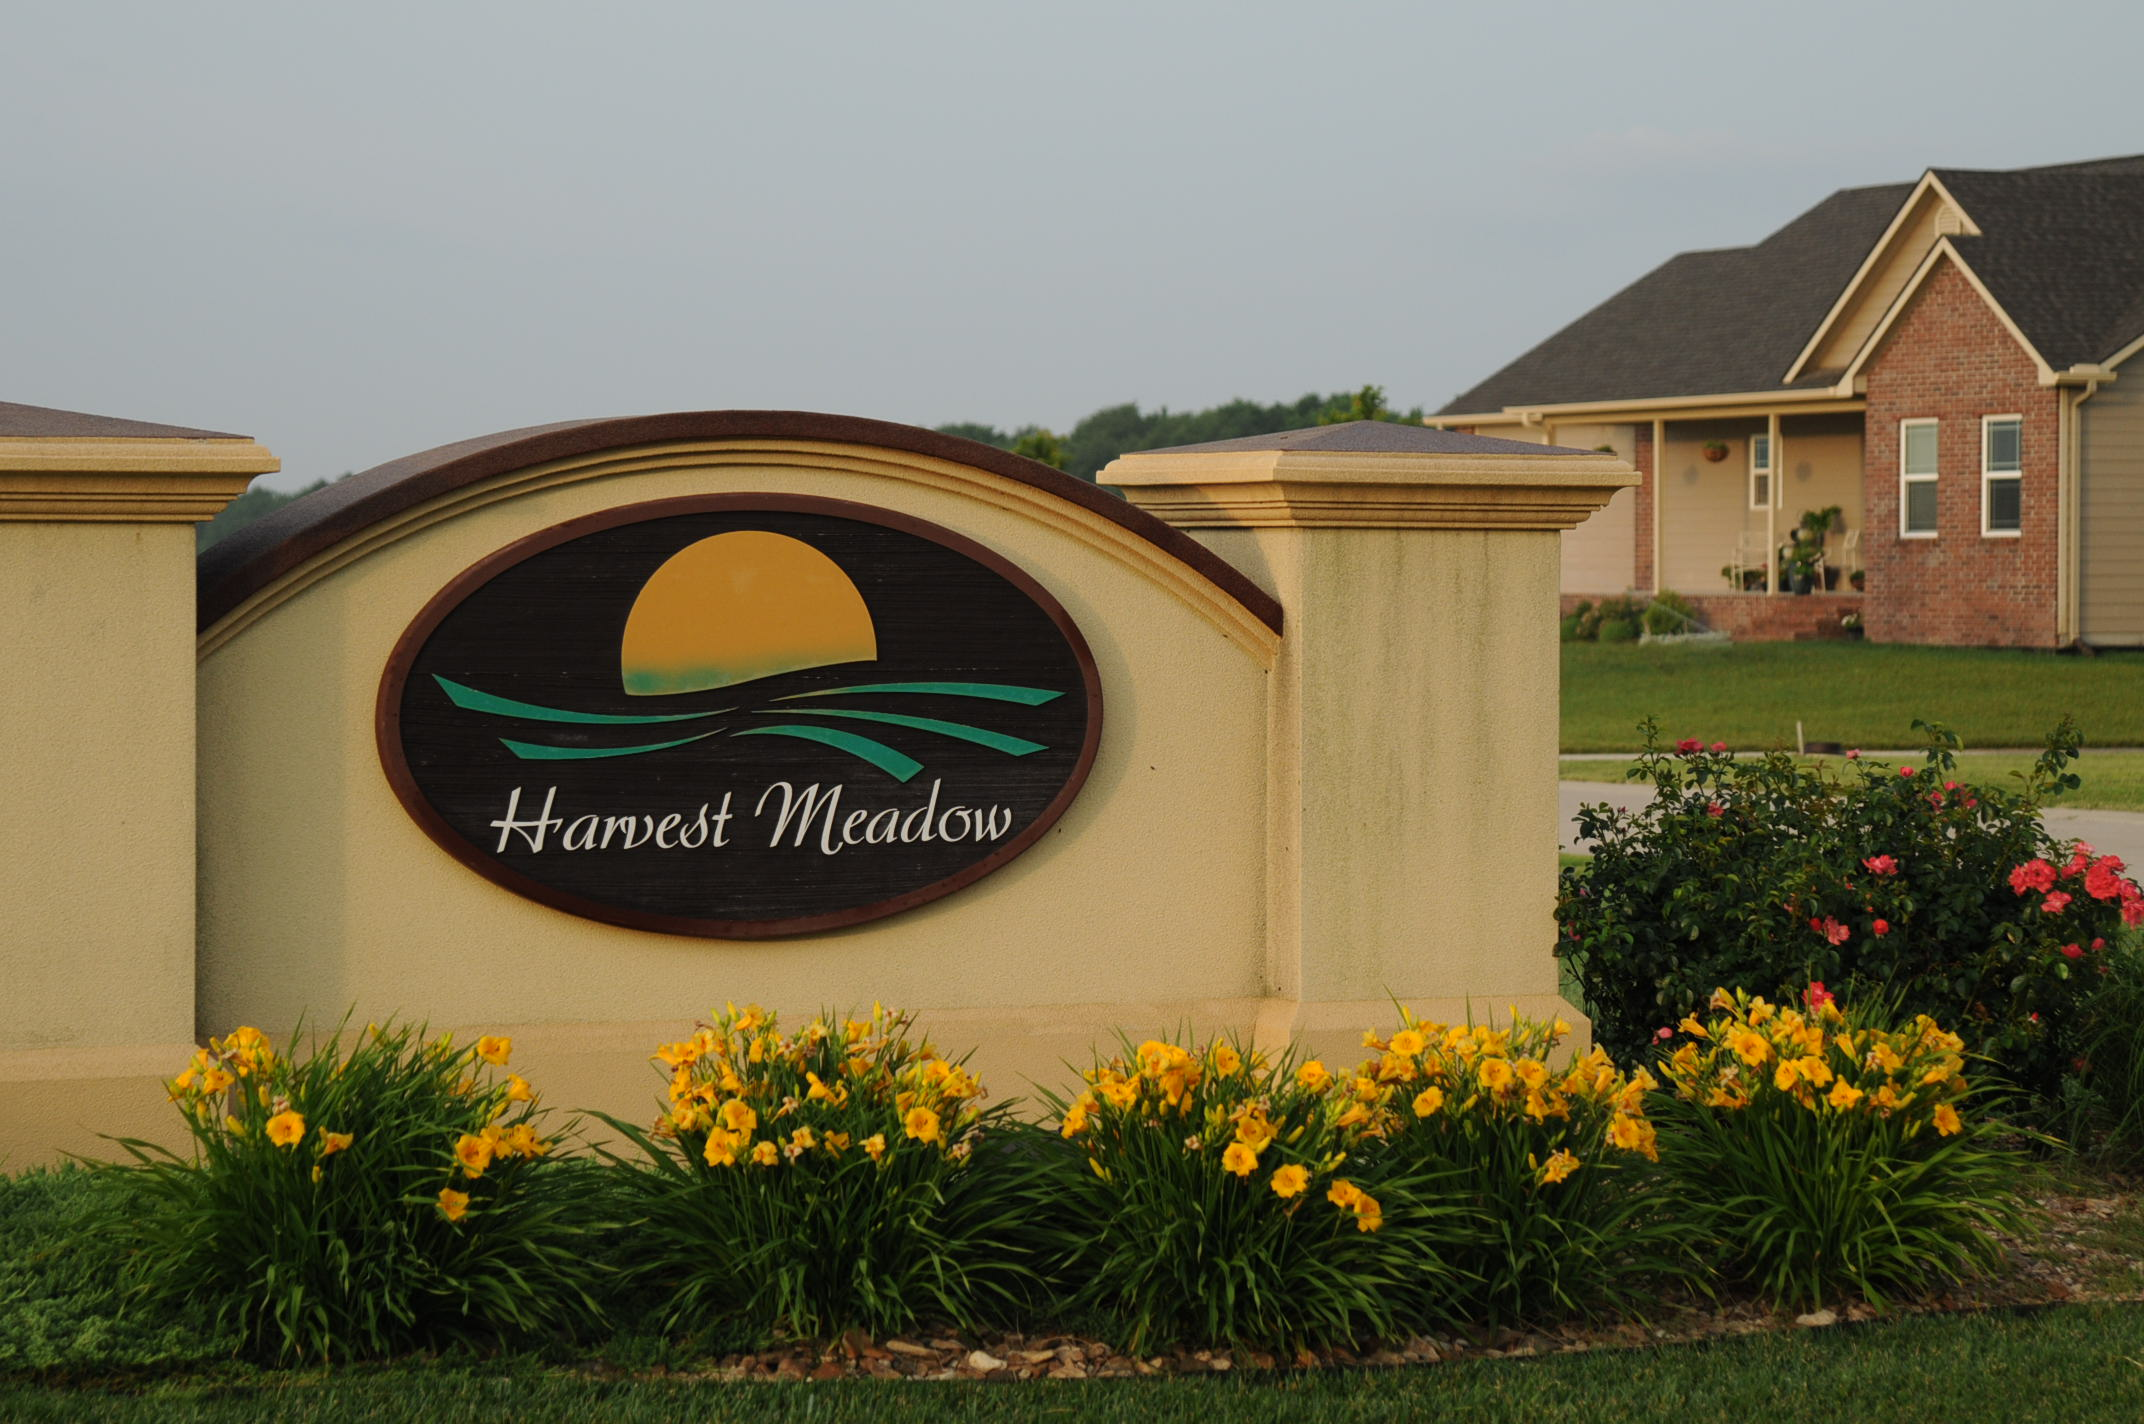 Harvest Meadows house lots